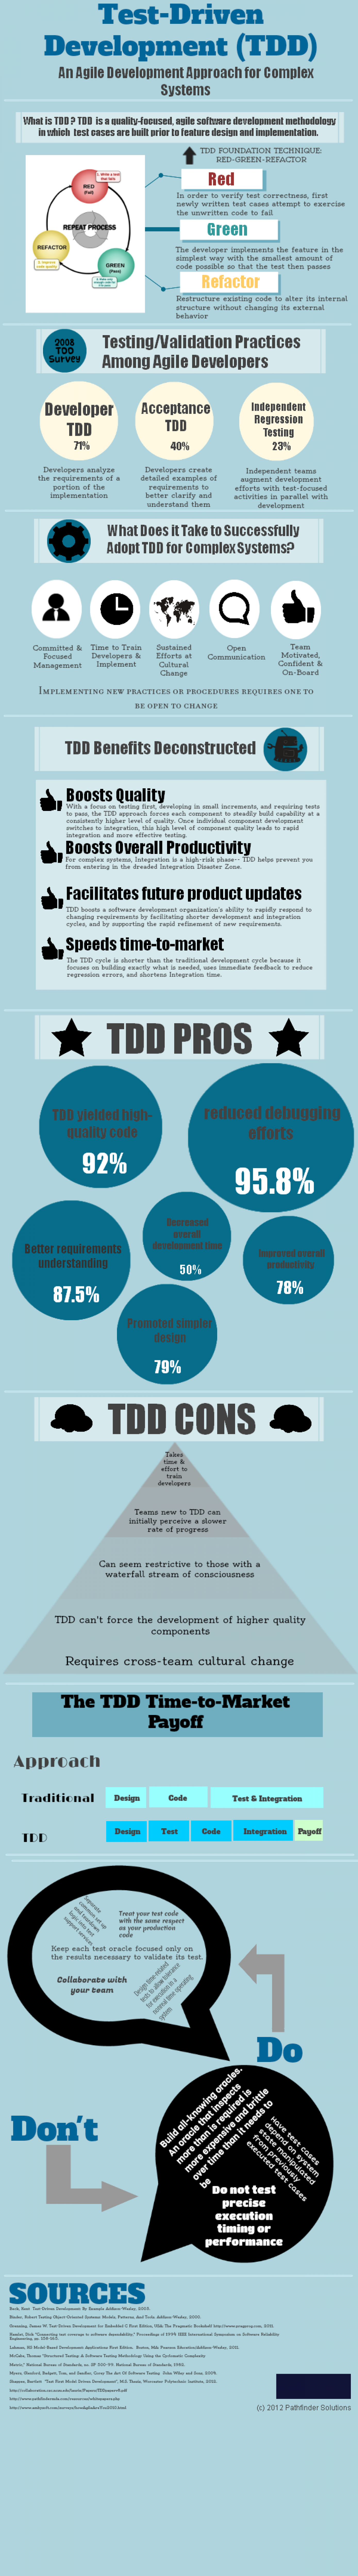 Test-Driven Development (TDD)  Infographic